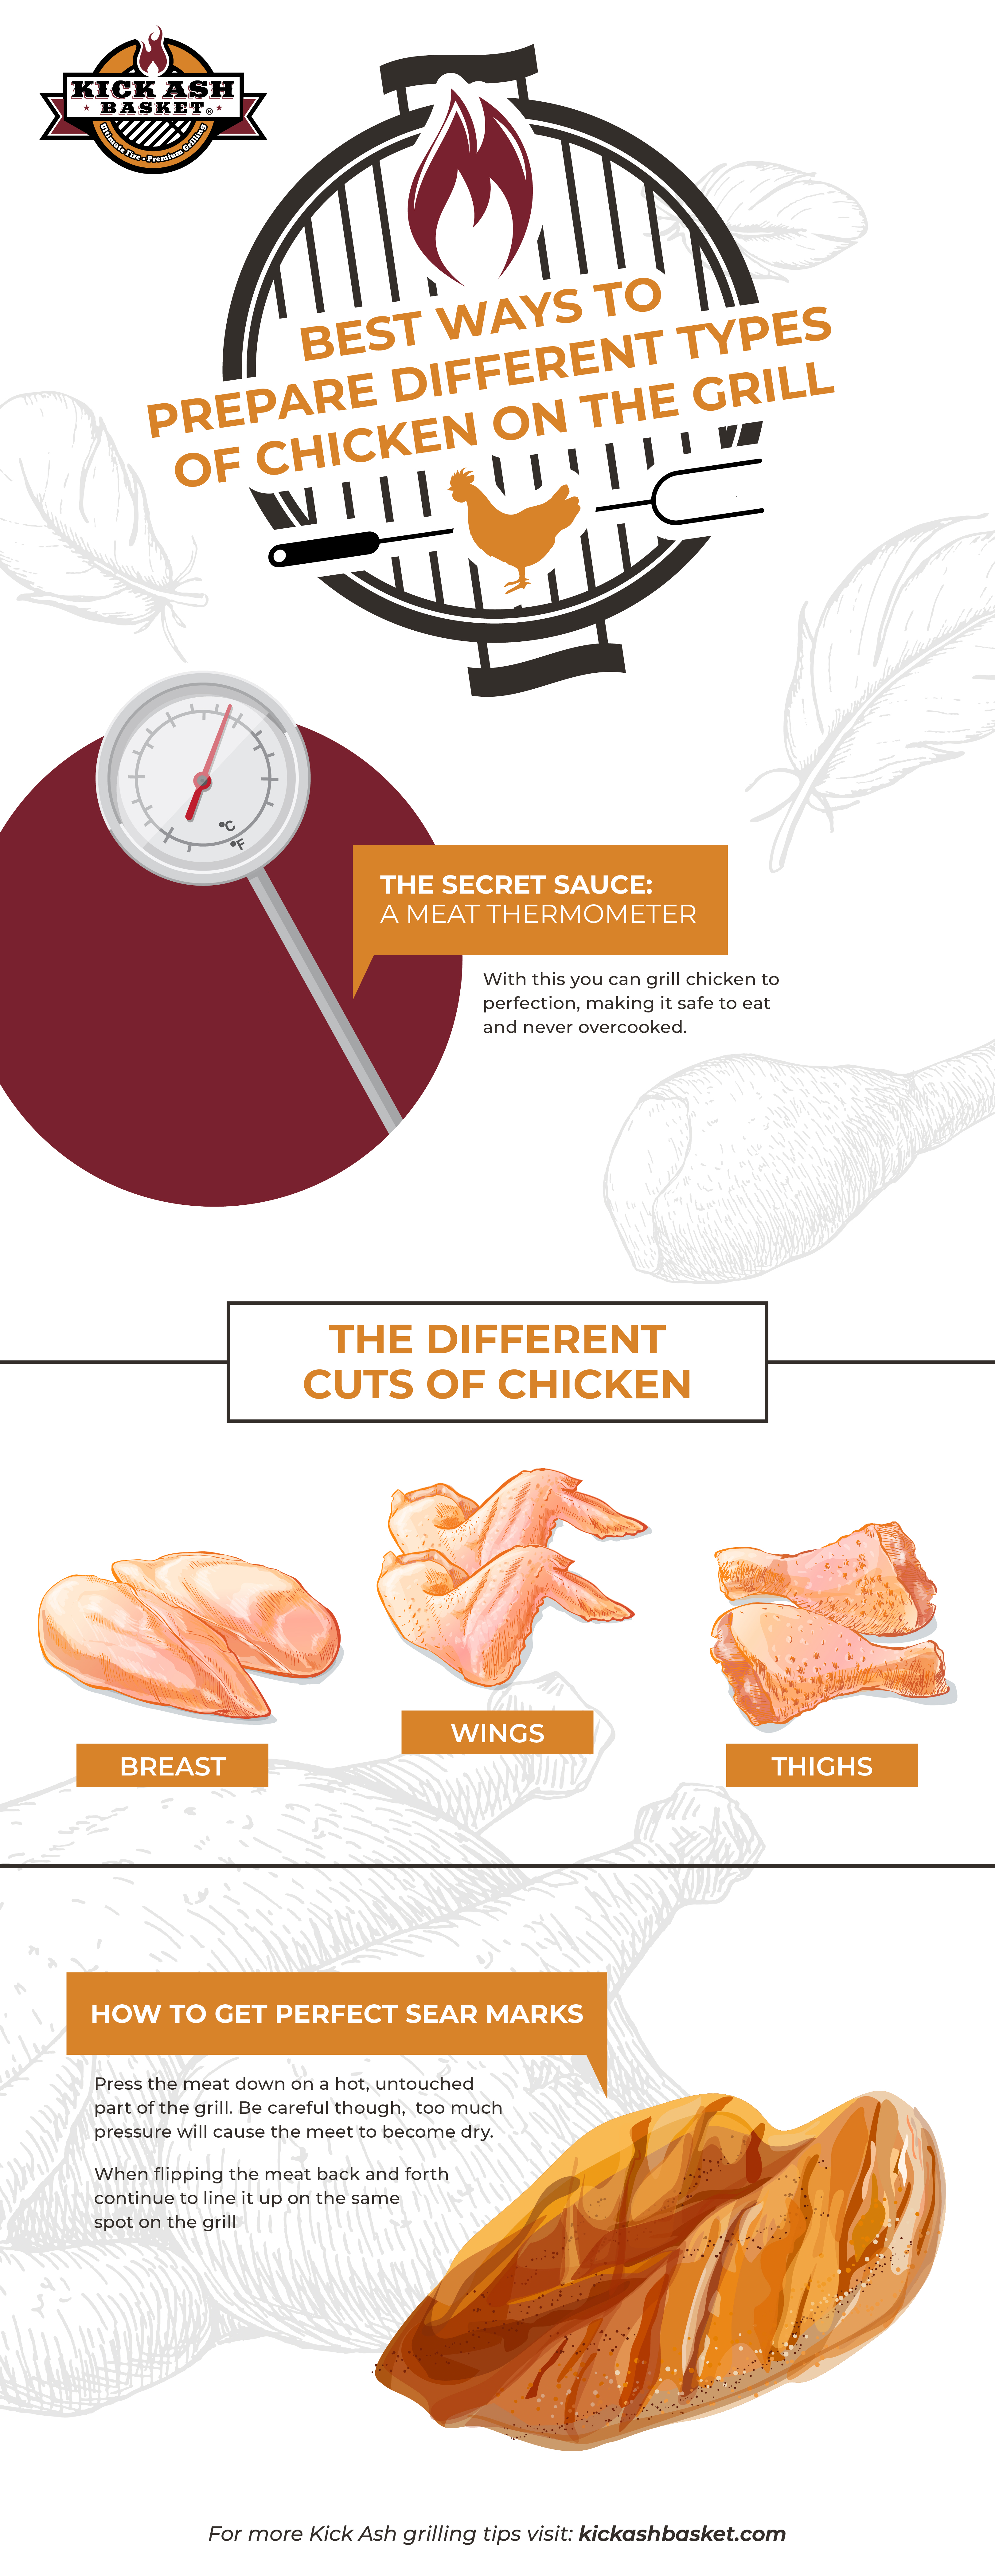 best ways to prepare different chicken on the grill